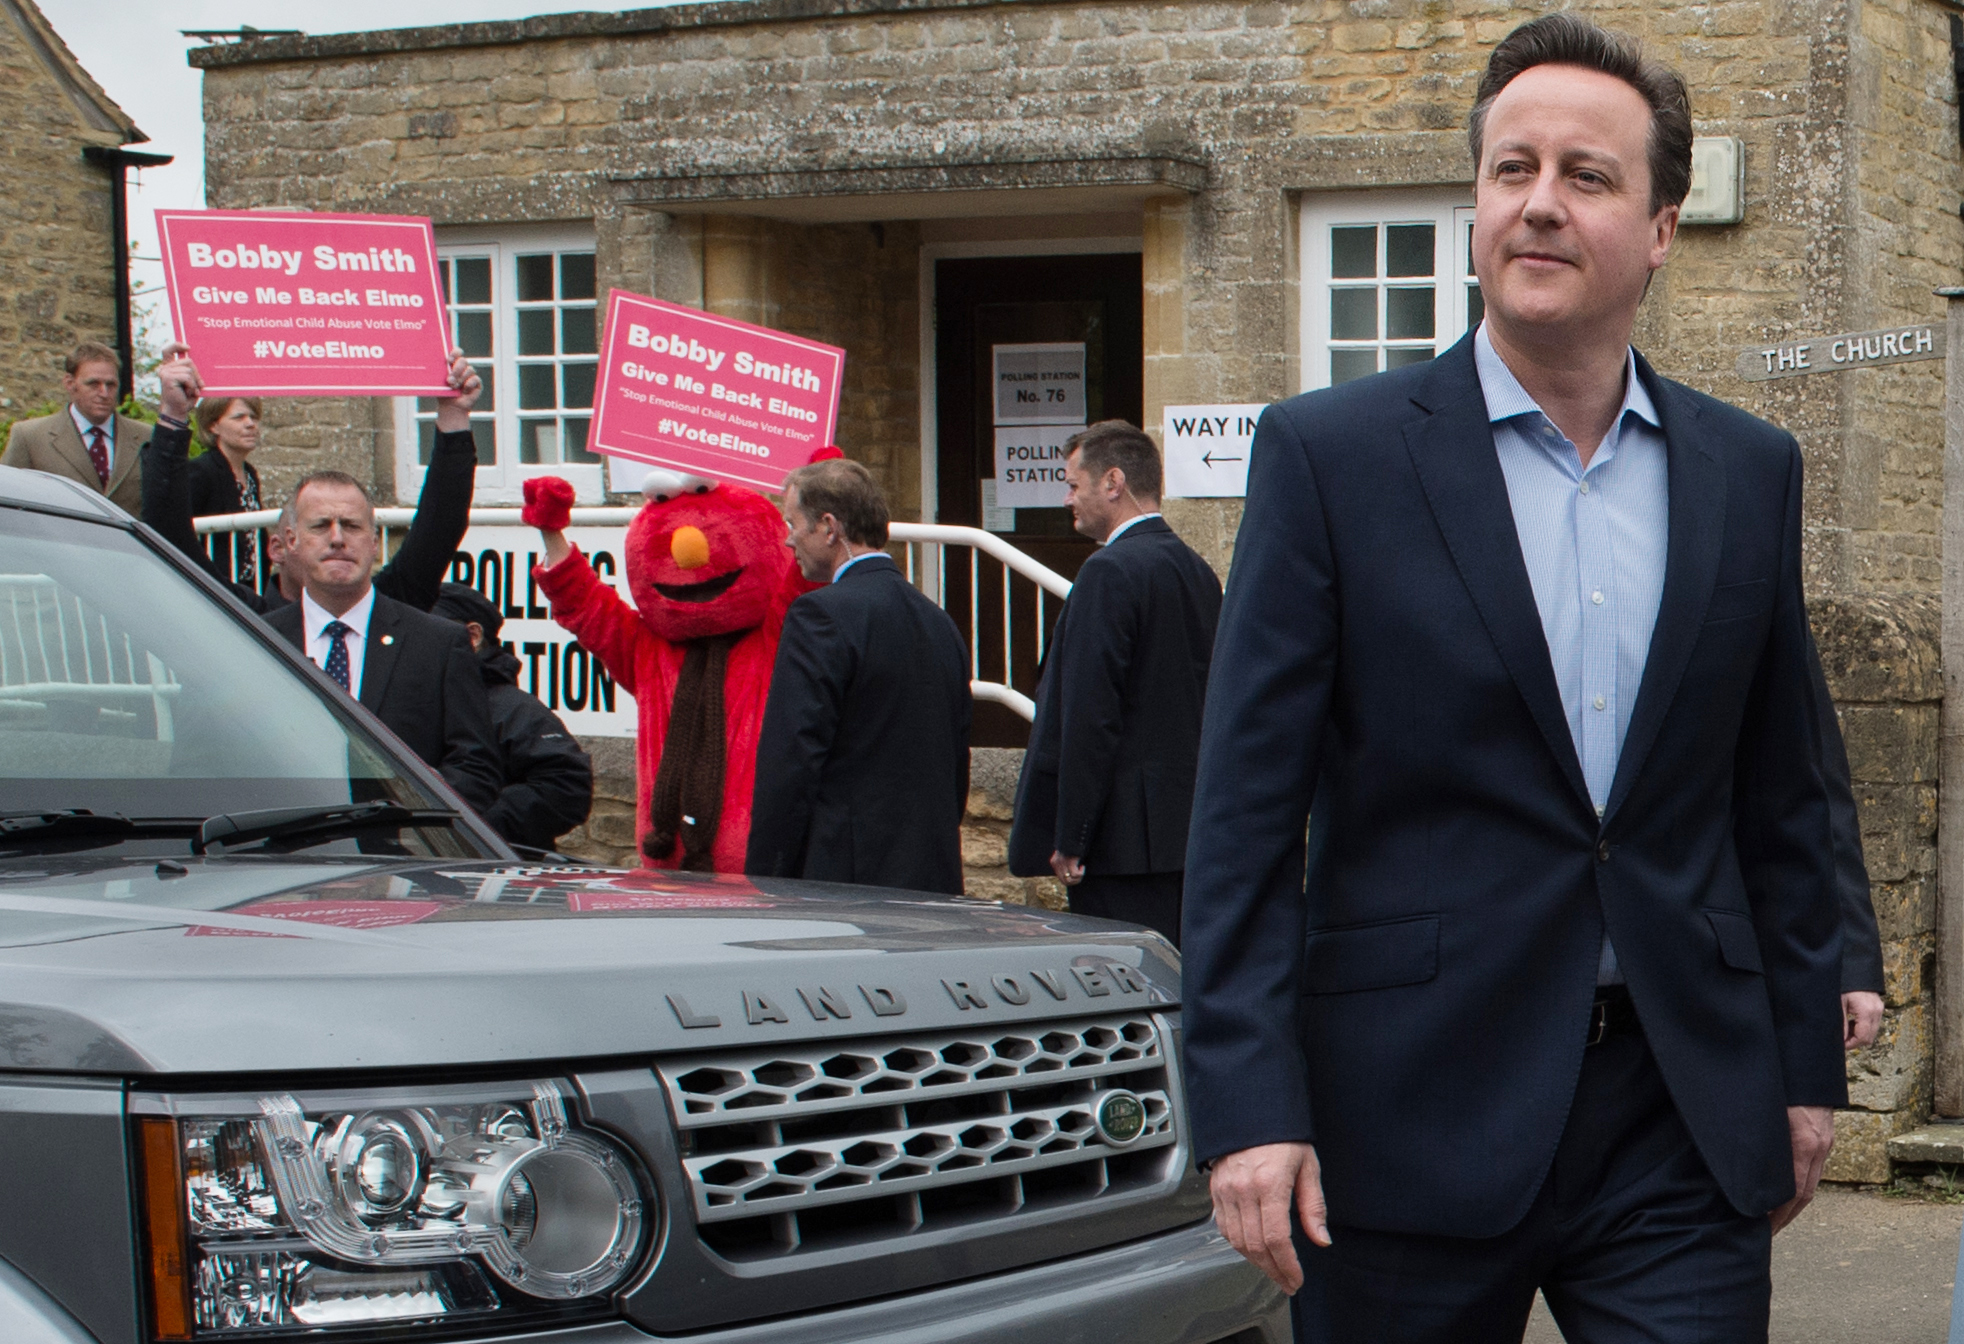 Britain's Prime Minister and Conservative Party leader David Cameron leaves the  polling station after voting in Spelsbury, England, in the general election on May 7, 2015.